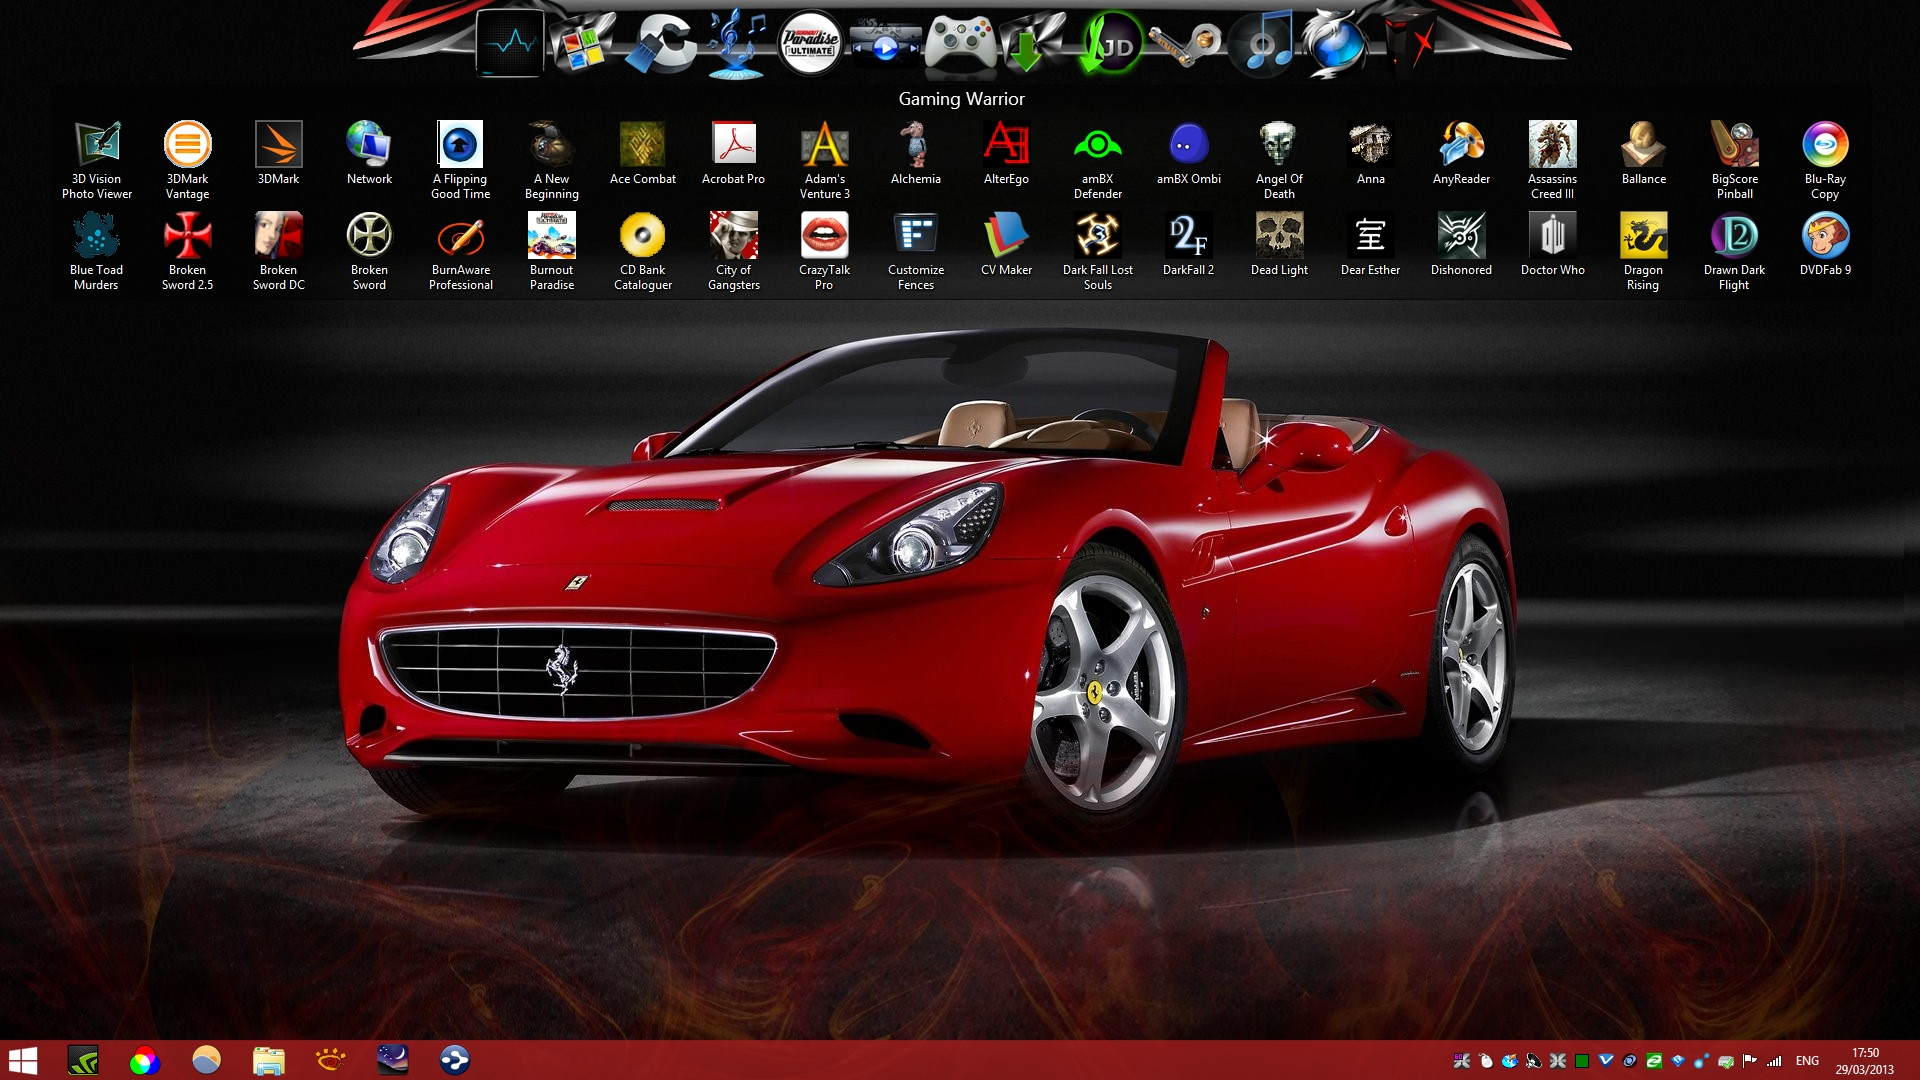 Desktop 7 Look!